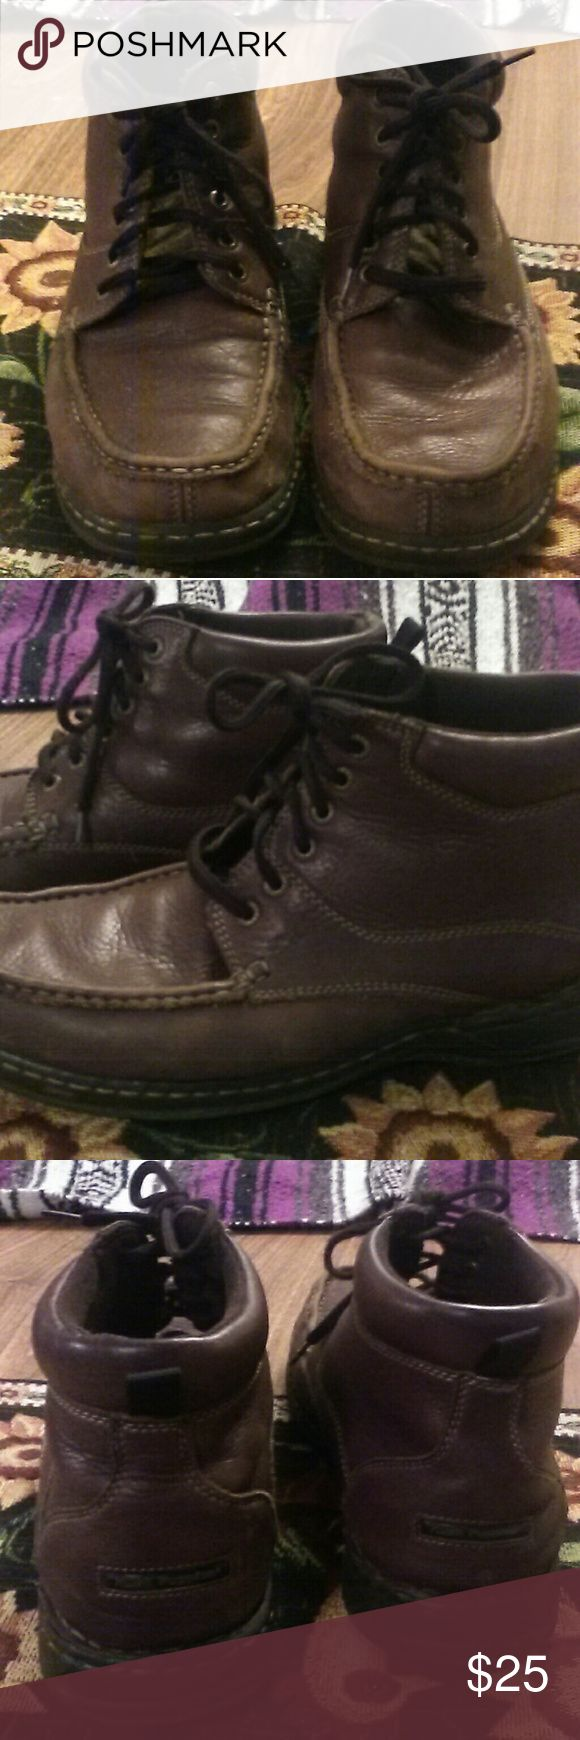 Mens Hush Puppies Sz.12M Ankle height lace up. Pre worn brown leather Men's Hush Puppies. Good condition. Plenty of miles left on these. Very soft & supple. I purchased these for my husband not too long ago. He wore them maybe a half dozen times or so. I should have known better. Let's just say, he's not the hush puppy kind of guy. Still a great pair of shoes for the hush puppy guy. Hush Puppies Shoes Boots